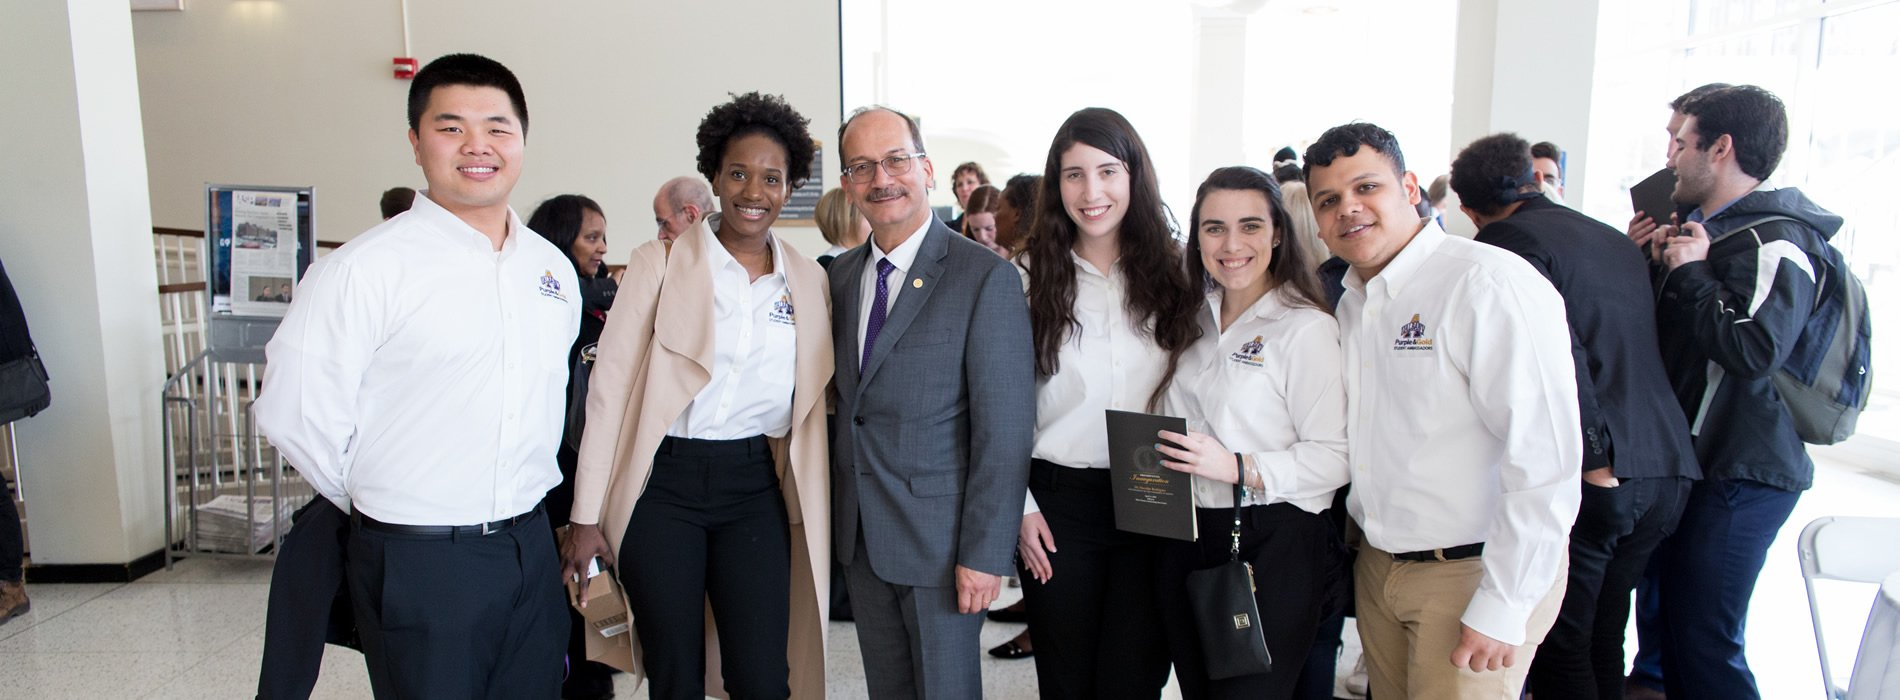 President with students